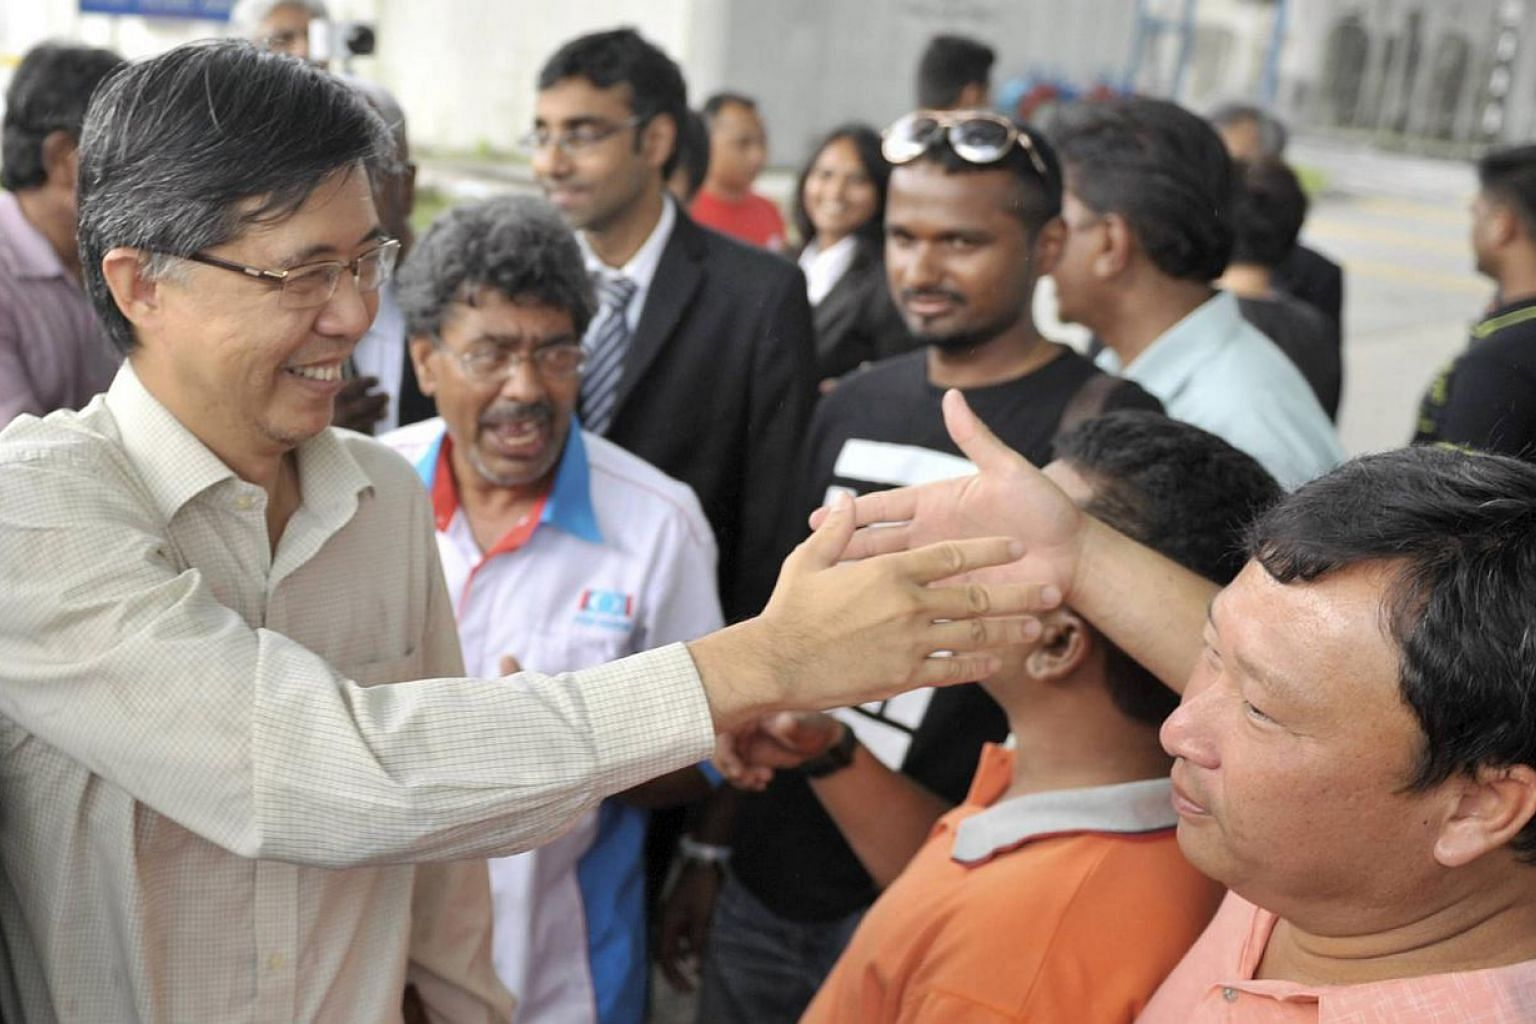 Prominent Malaysian opposition leader Tian Chua (left, seen in this May 2013 file photo), said on Sunday, May 3, 2015, that he had been physically abused by police after they arrested him without giving any reason. -- PHOTO:THE STAR/ASIA NEWS NETWORK